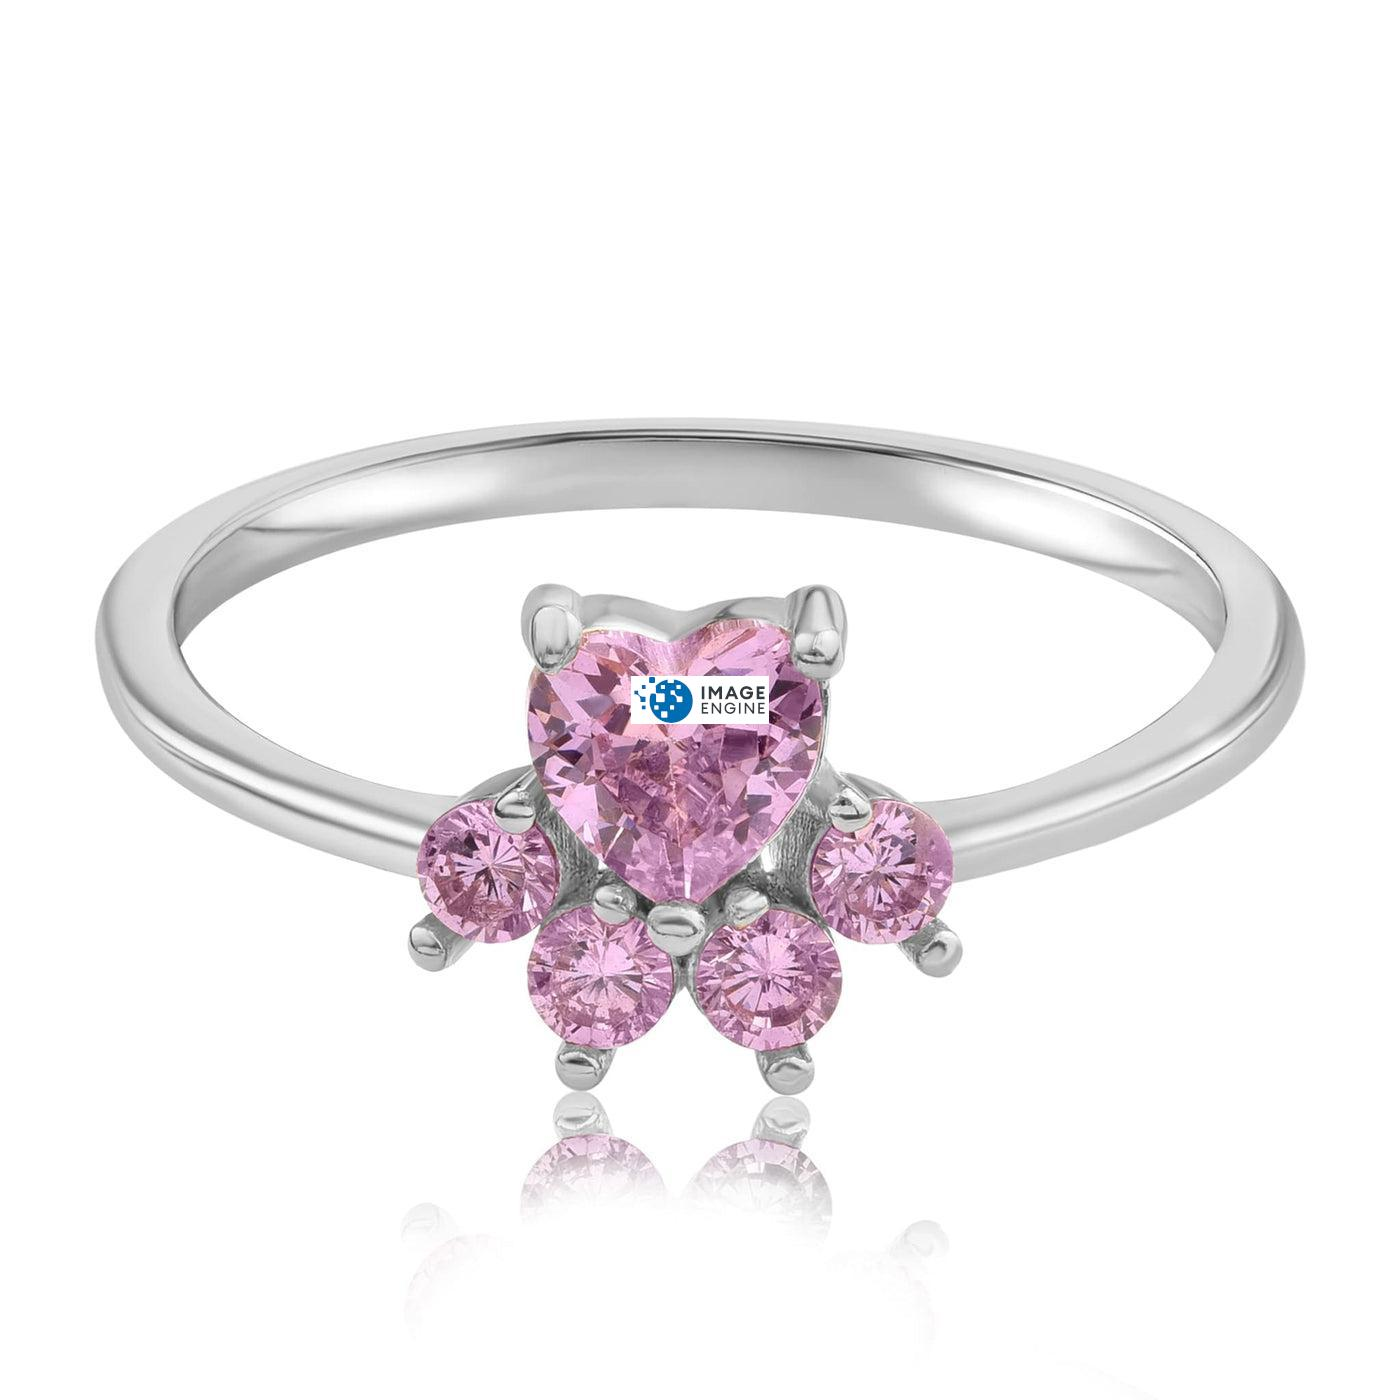 Bella Paw Rose Quartz Ring - Front View Facing Down - 925 Sterling Silver